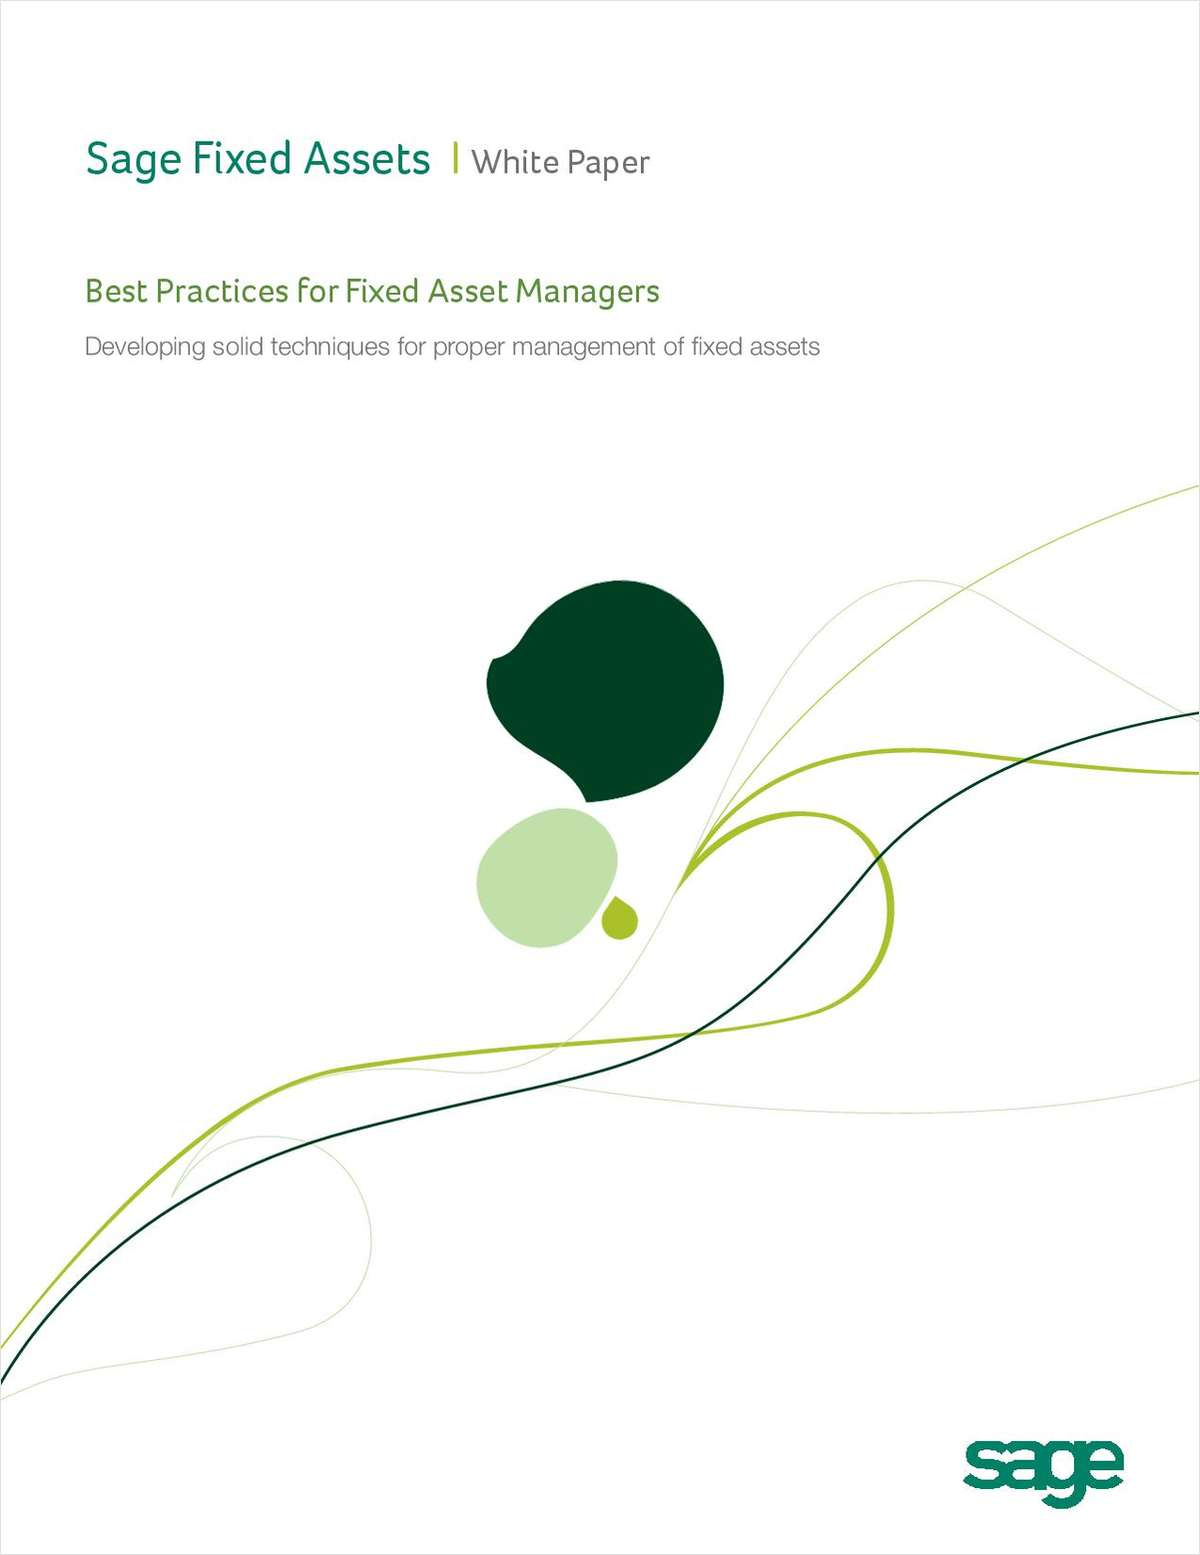 Best Practices for Fixed Asset Managers